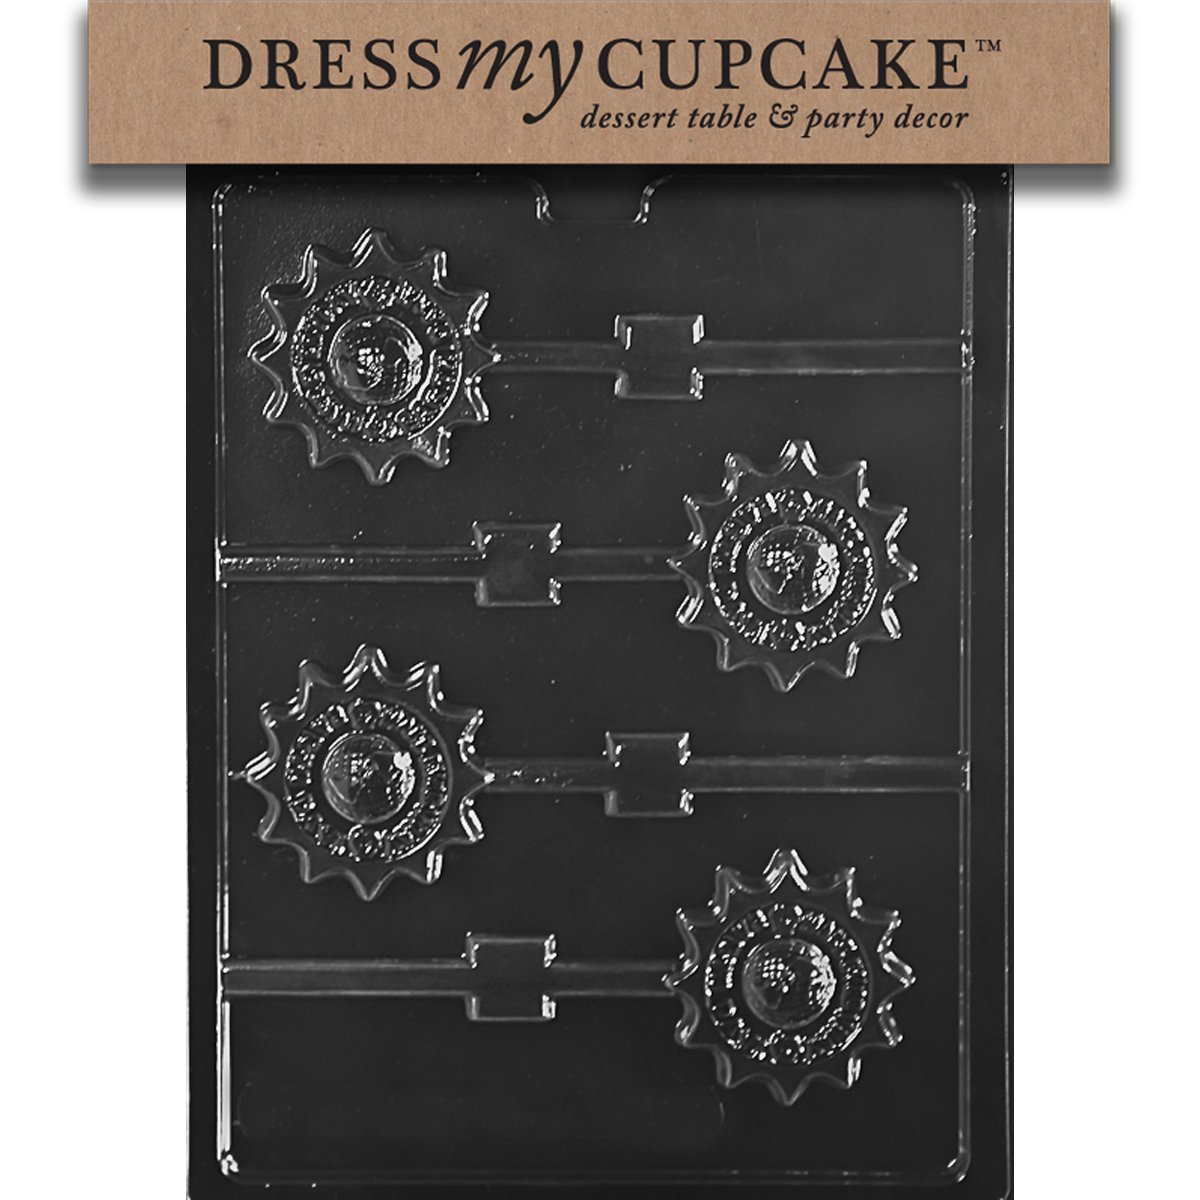 Dress My Cupcake DMCM232SET Chocolate Candy Mold, Make Everyday Earth Day Lollipop, Set of 6 by Dress My Cupcake